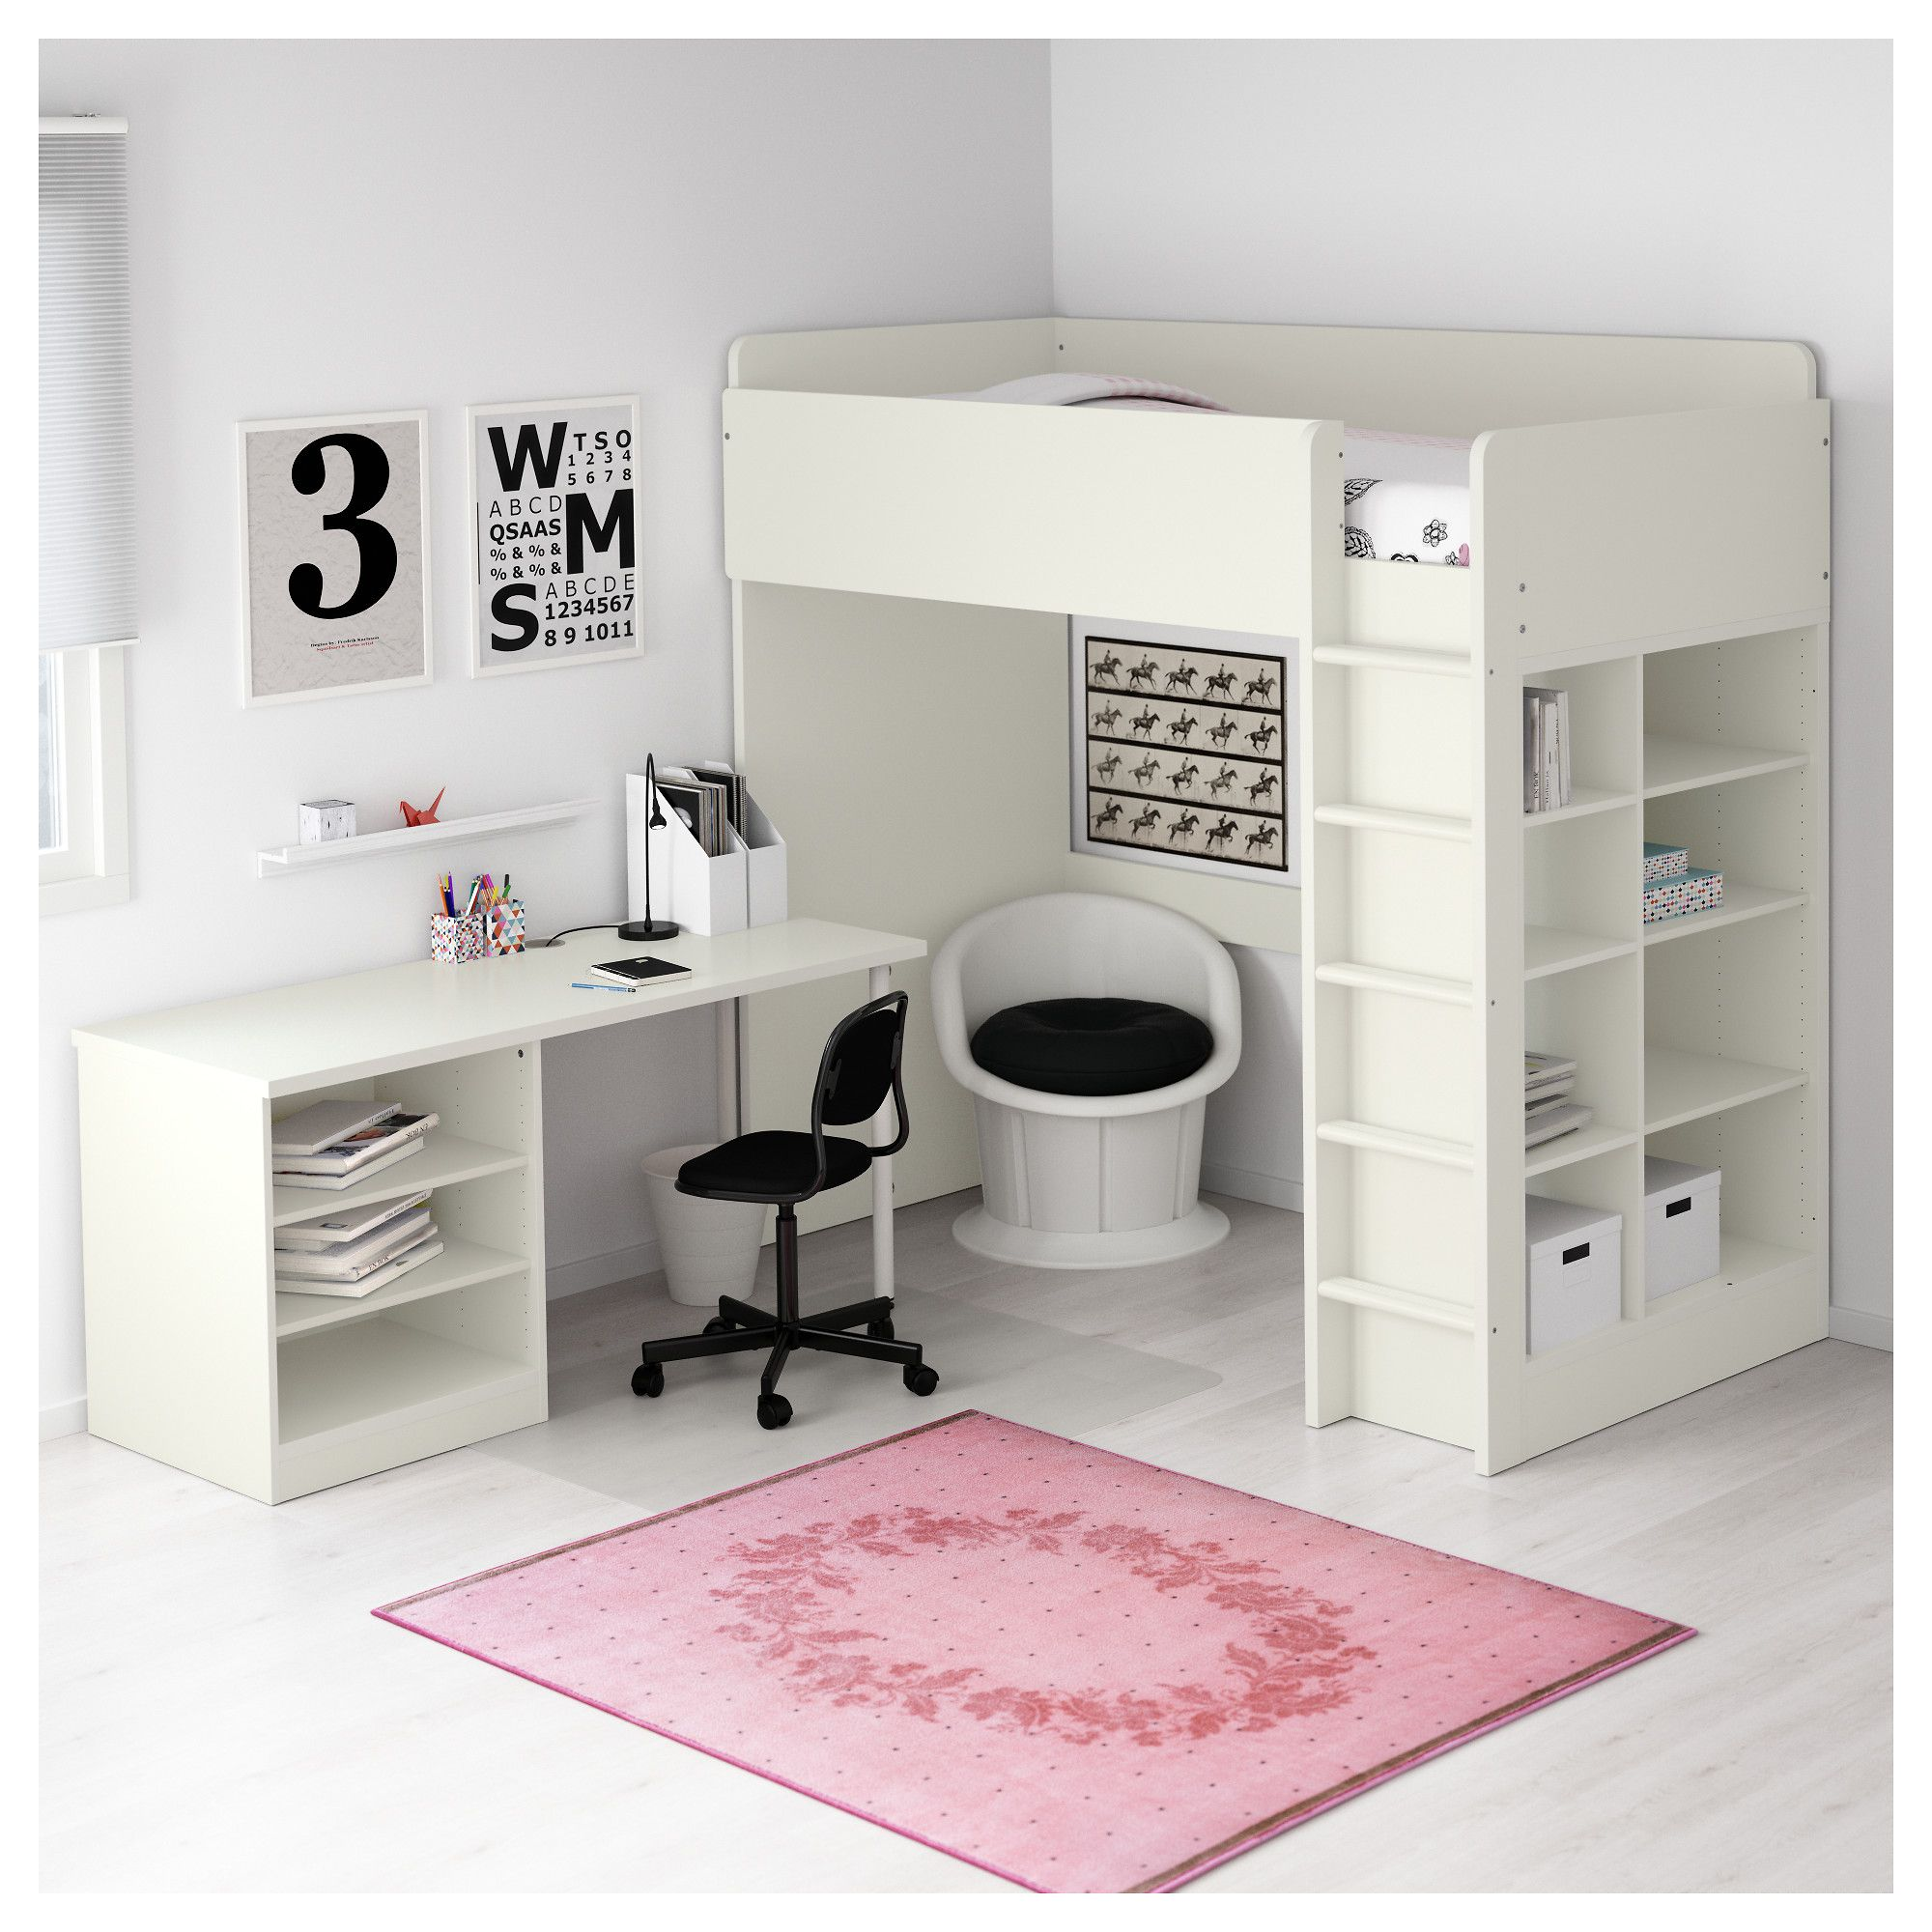 kids and loft full beds desk top with storage originality bed for fantastic stairs combo cheap bunk